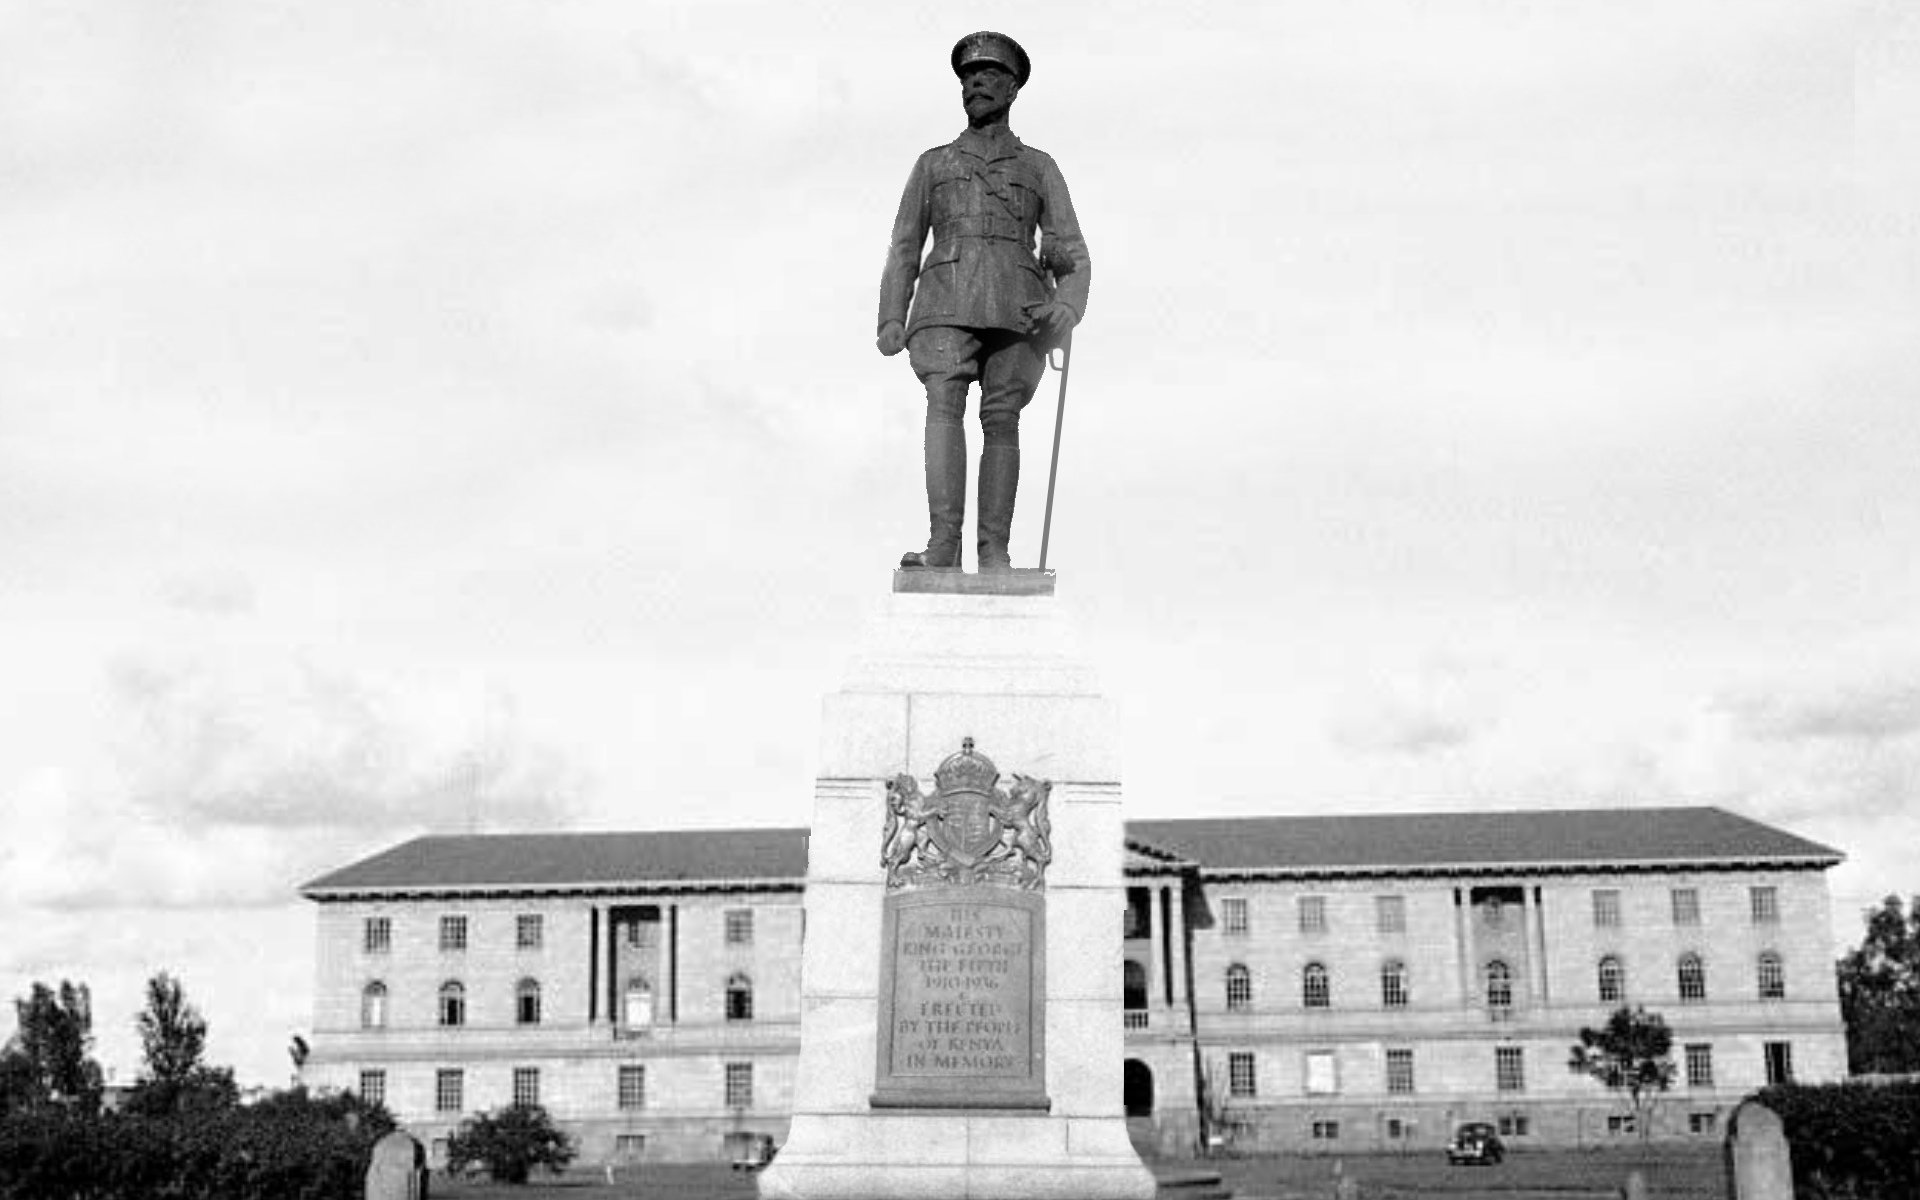 The statue of King George V used to stand on a pedestal at the junction of Queensway Road and Princess Elizabeth Way, now Uhuru Highway. It was later replaced with that of Mzee Kenyatta.